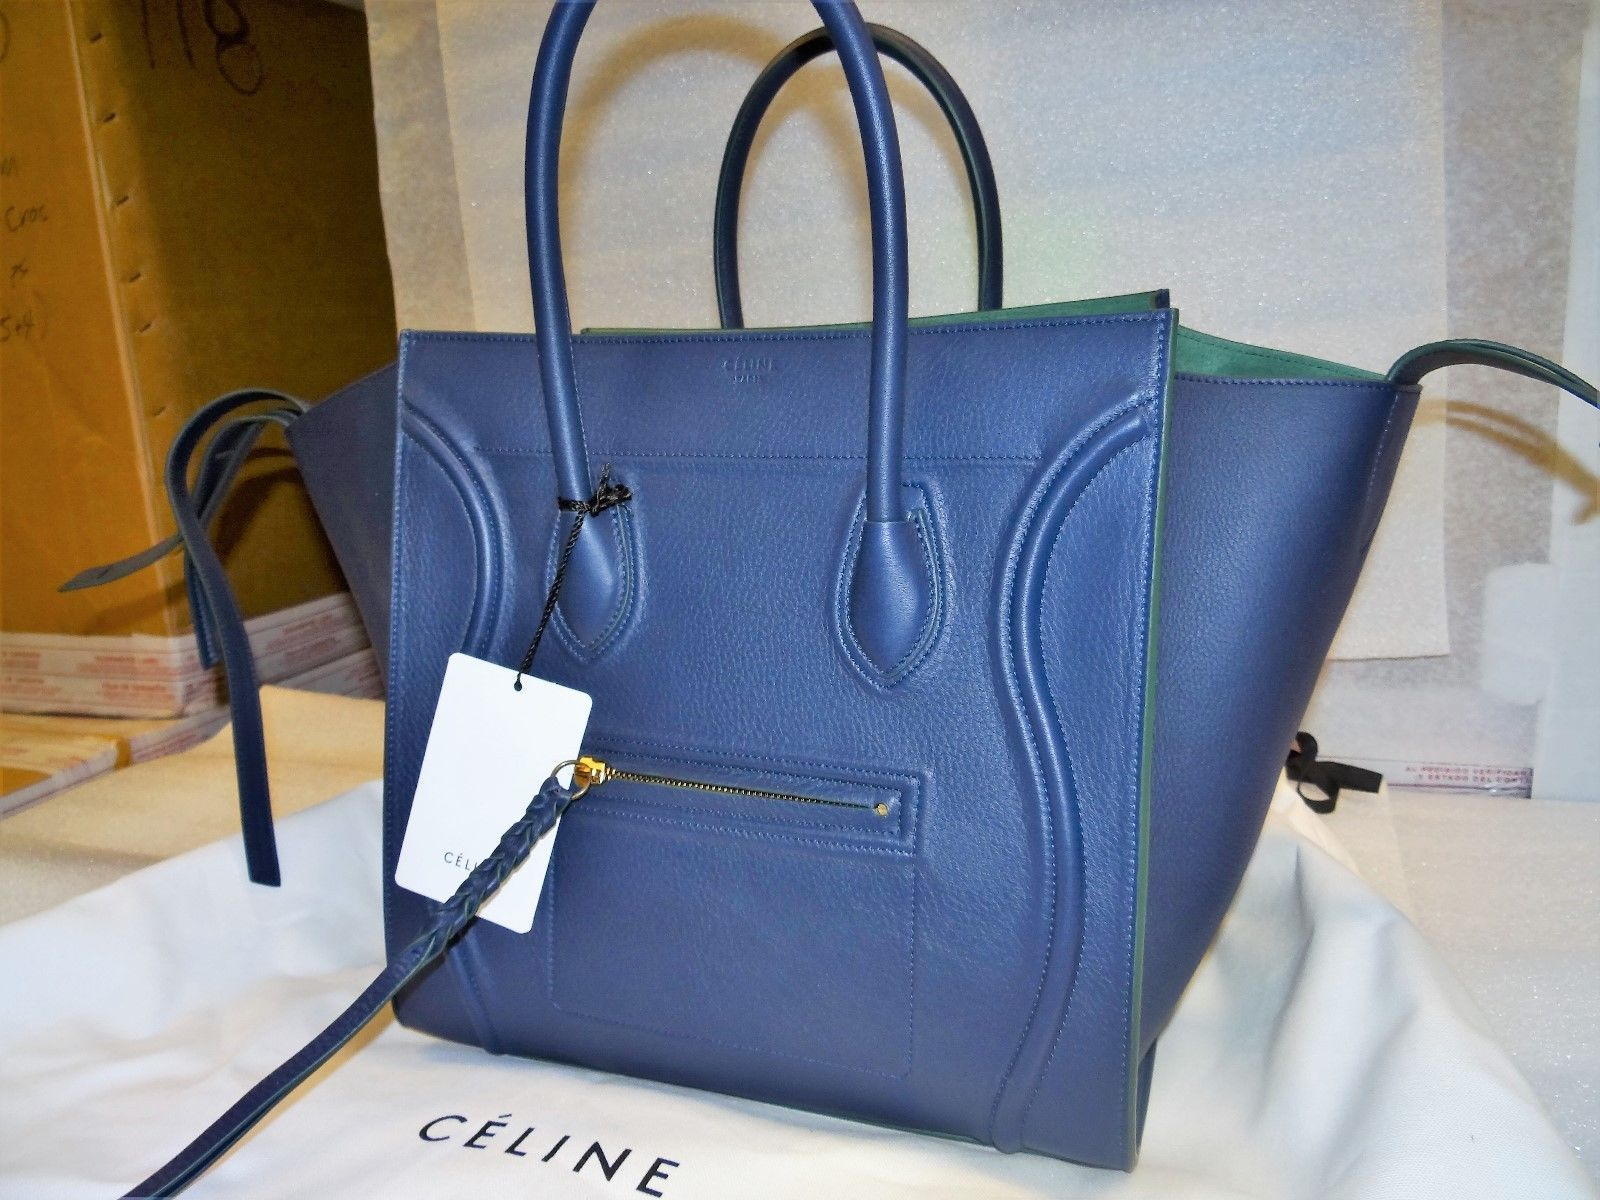 9de94c1005fb Celine Medium Luggage Phantom Tote In Navy W  Green Leather Msrp 3200.00 Nwt